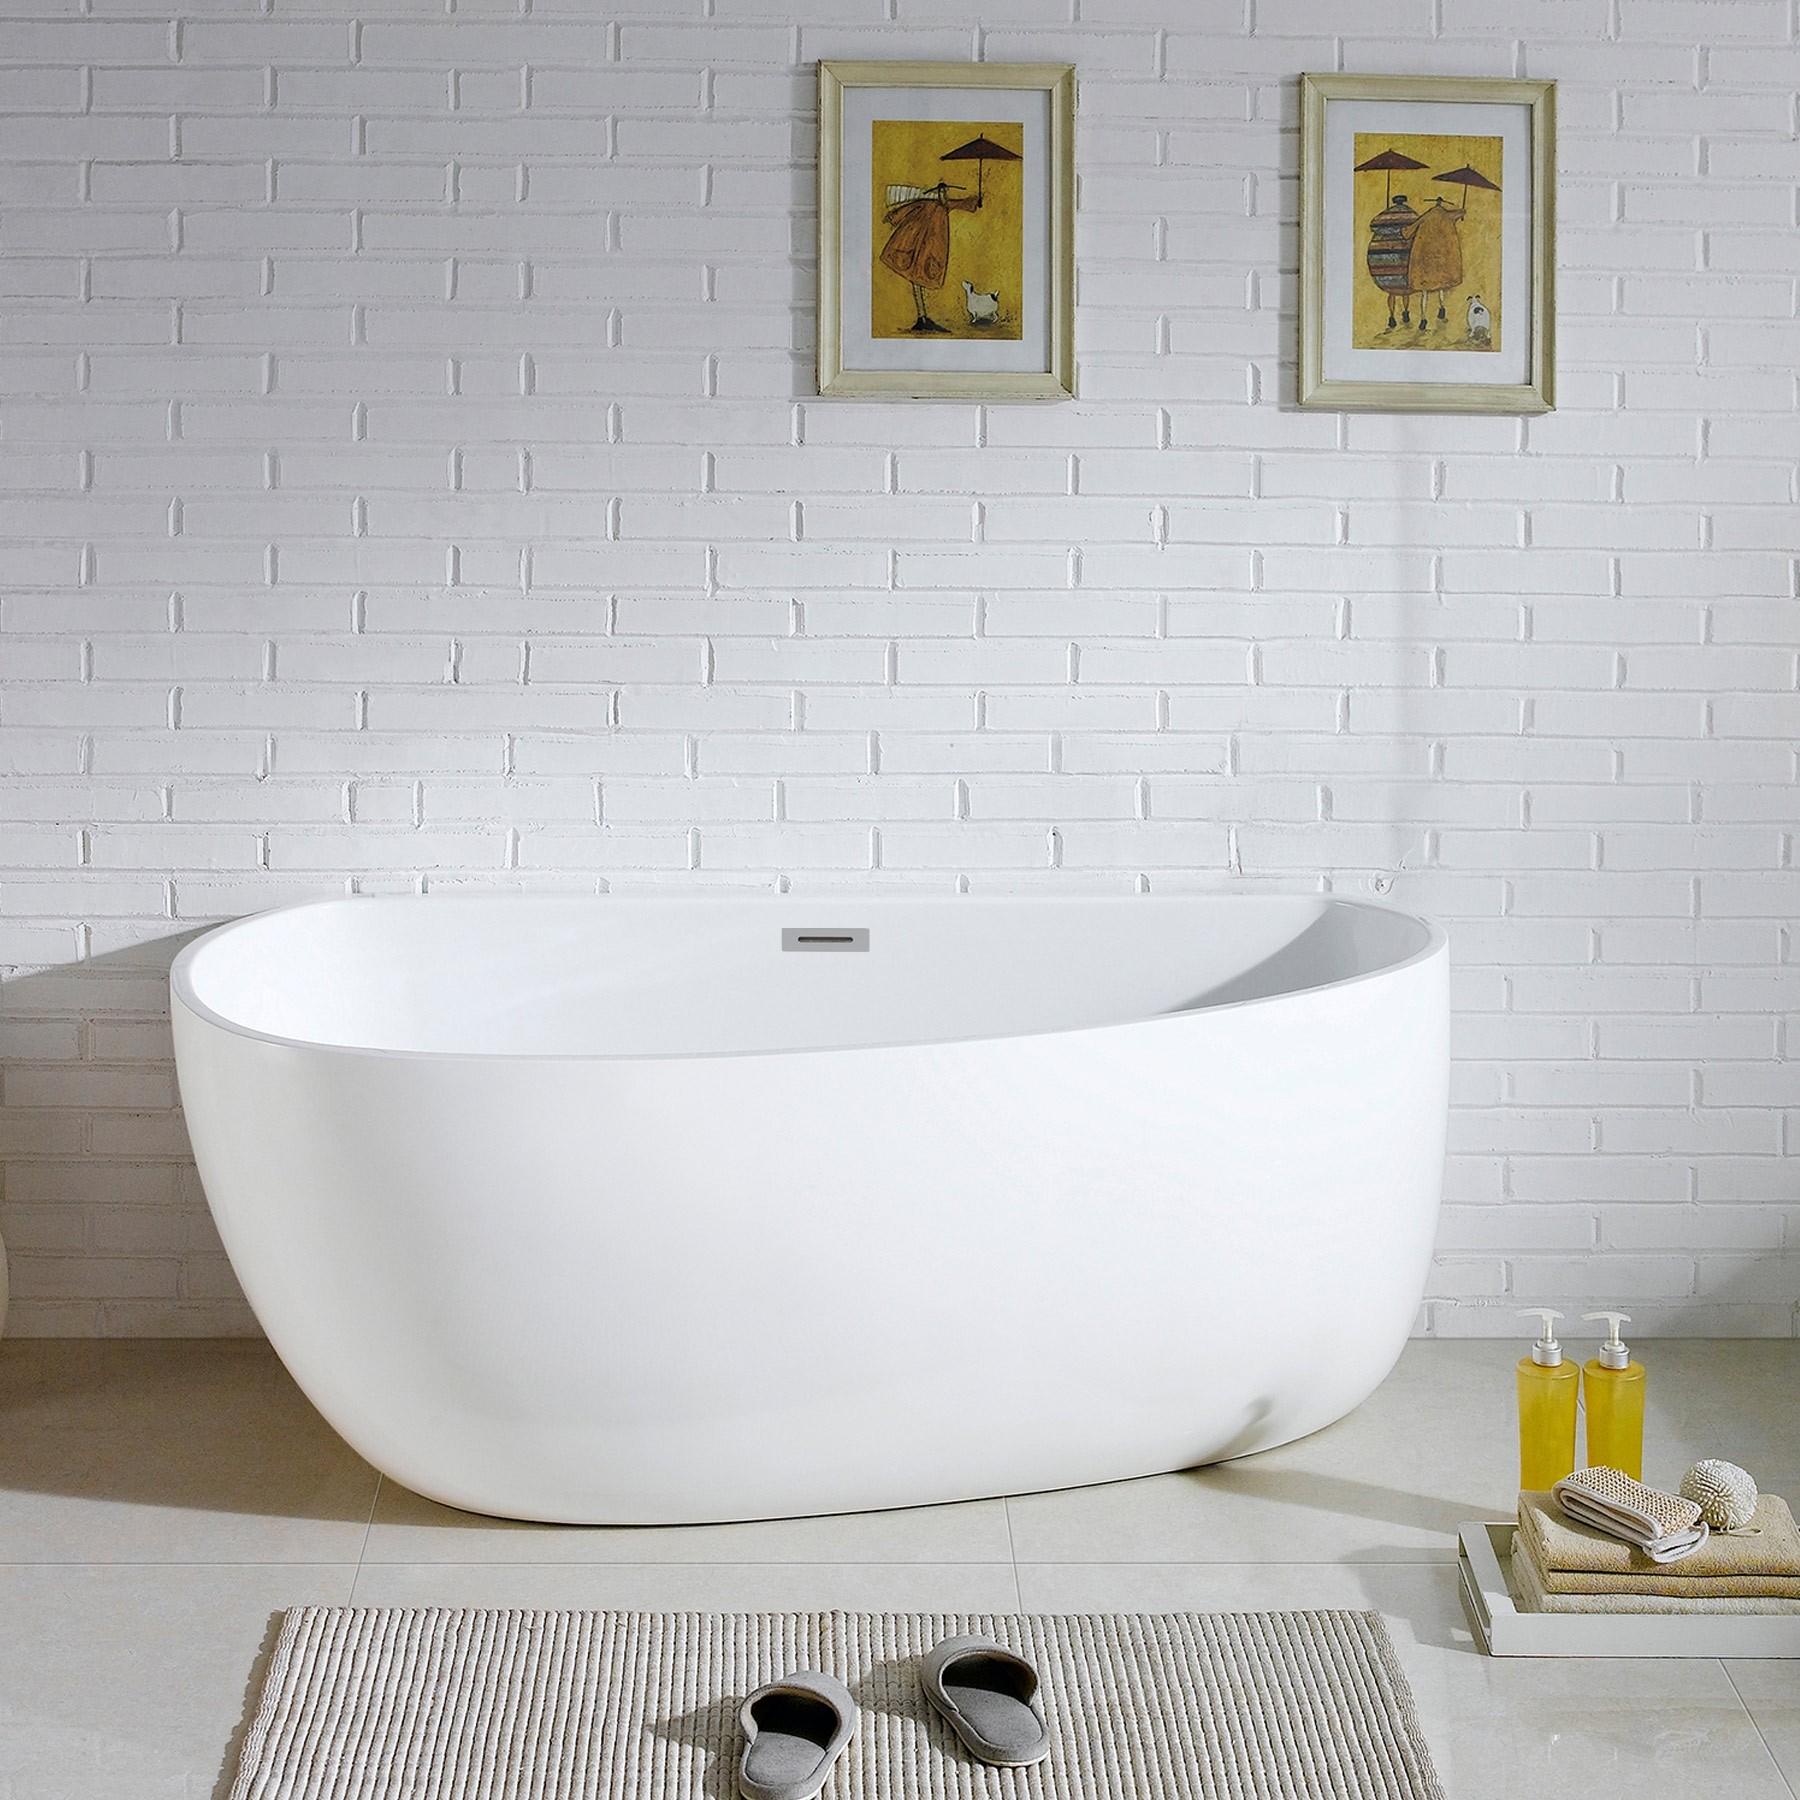 bath qualitex standing x baths image free bathrooms grosvenor freestanding iconic tub